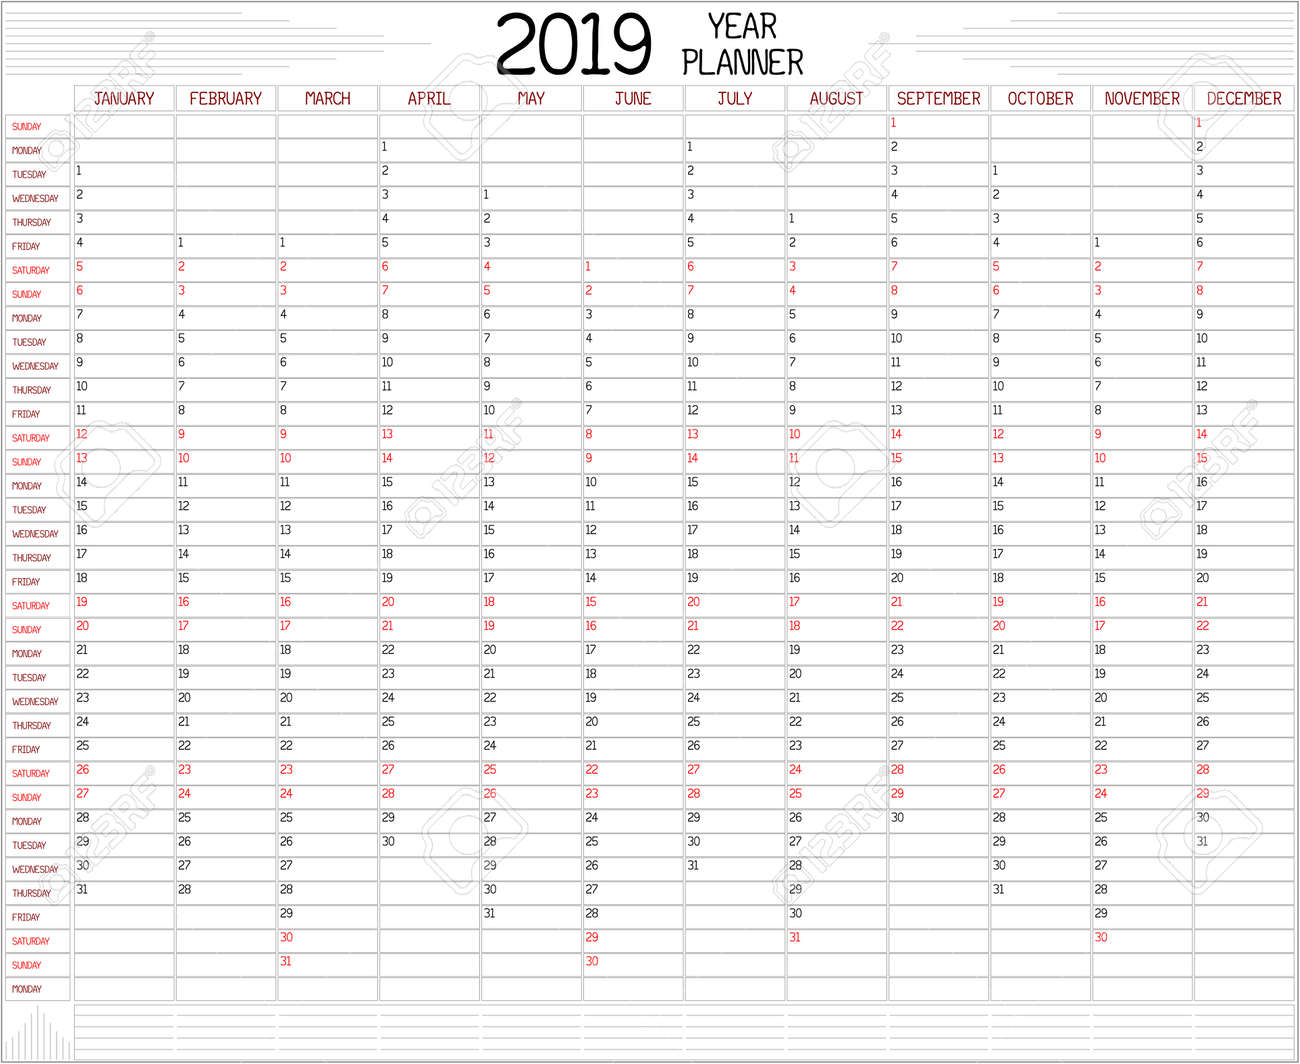 2019 Planner Calendar Year 2019 Planner   An Annual Planner Calendar For The Year 2019